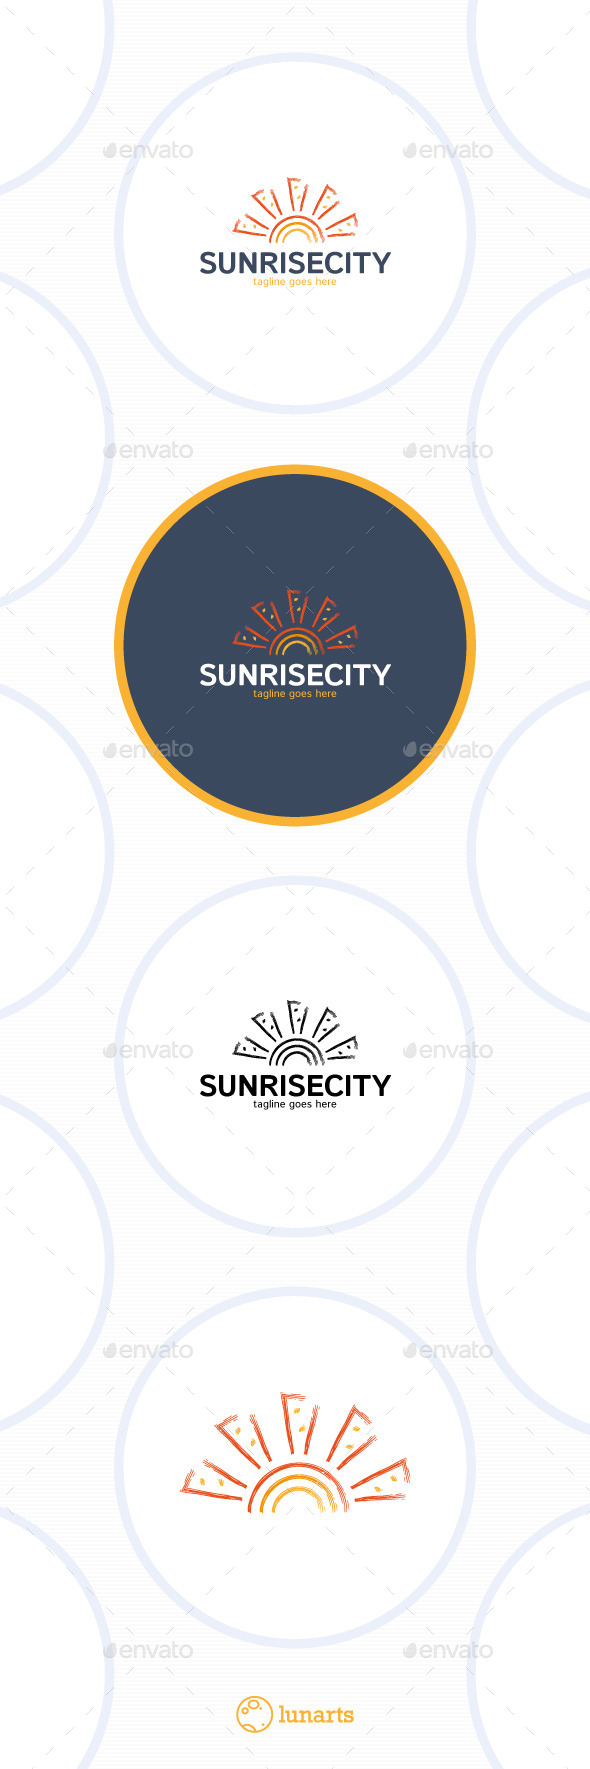 Sunrise City Logo - Sea Sun - Nature Logo Templates